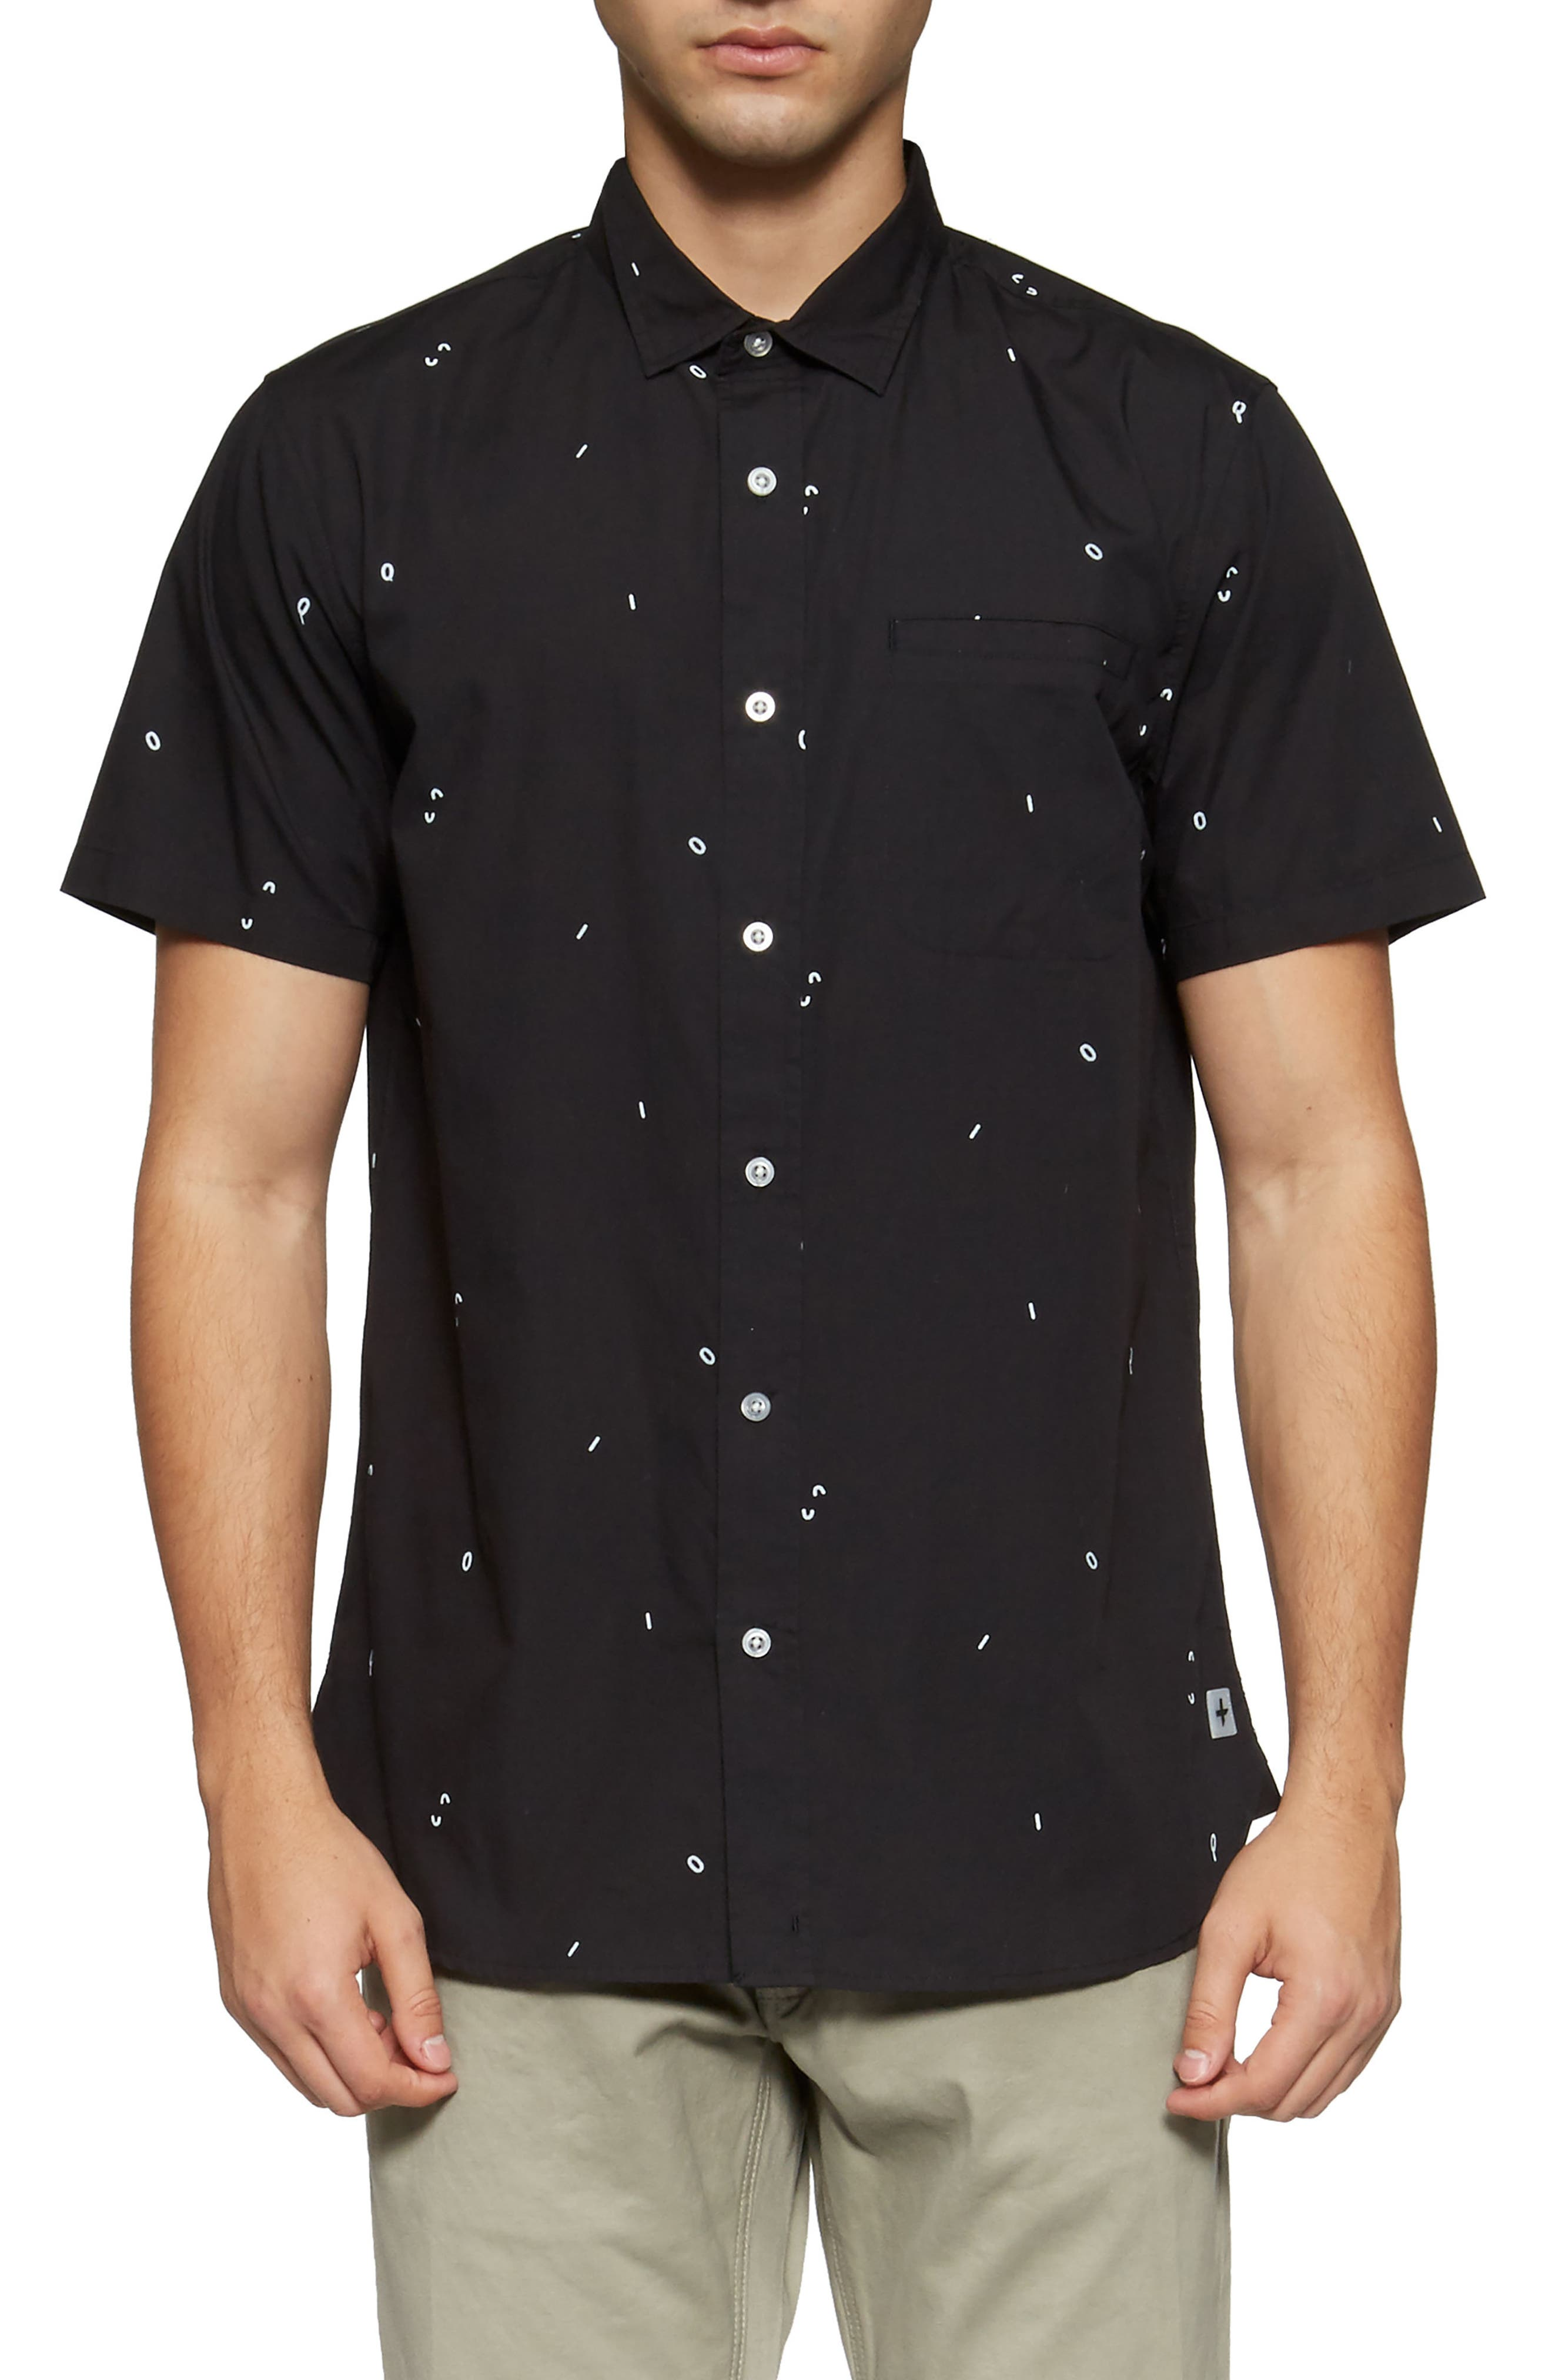 Alternate Image 1 Selected - TAVIK 'Porter' Print Poplin Short Sleeve Woven Shirt